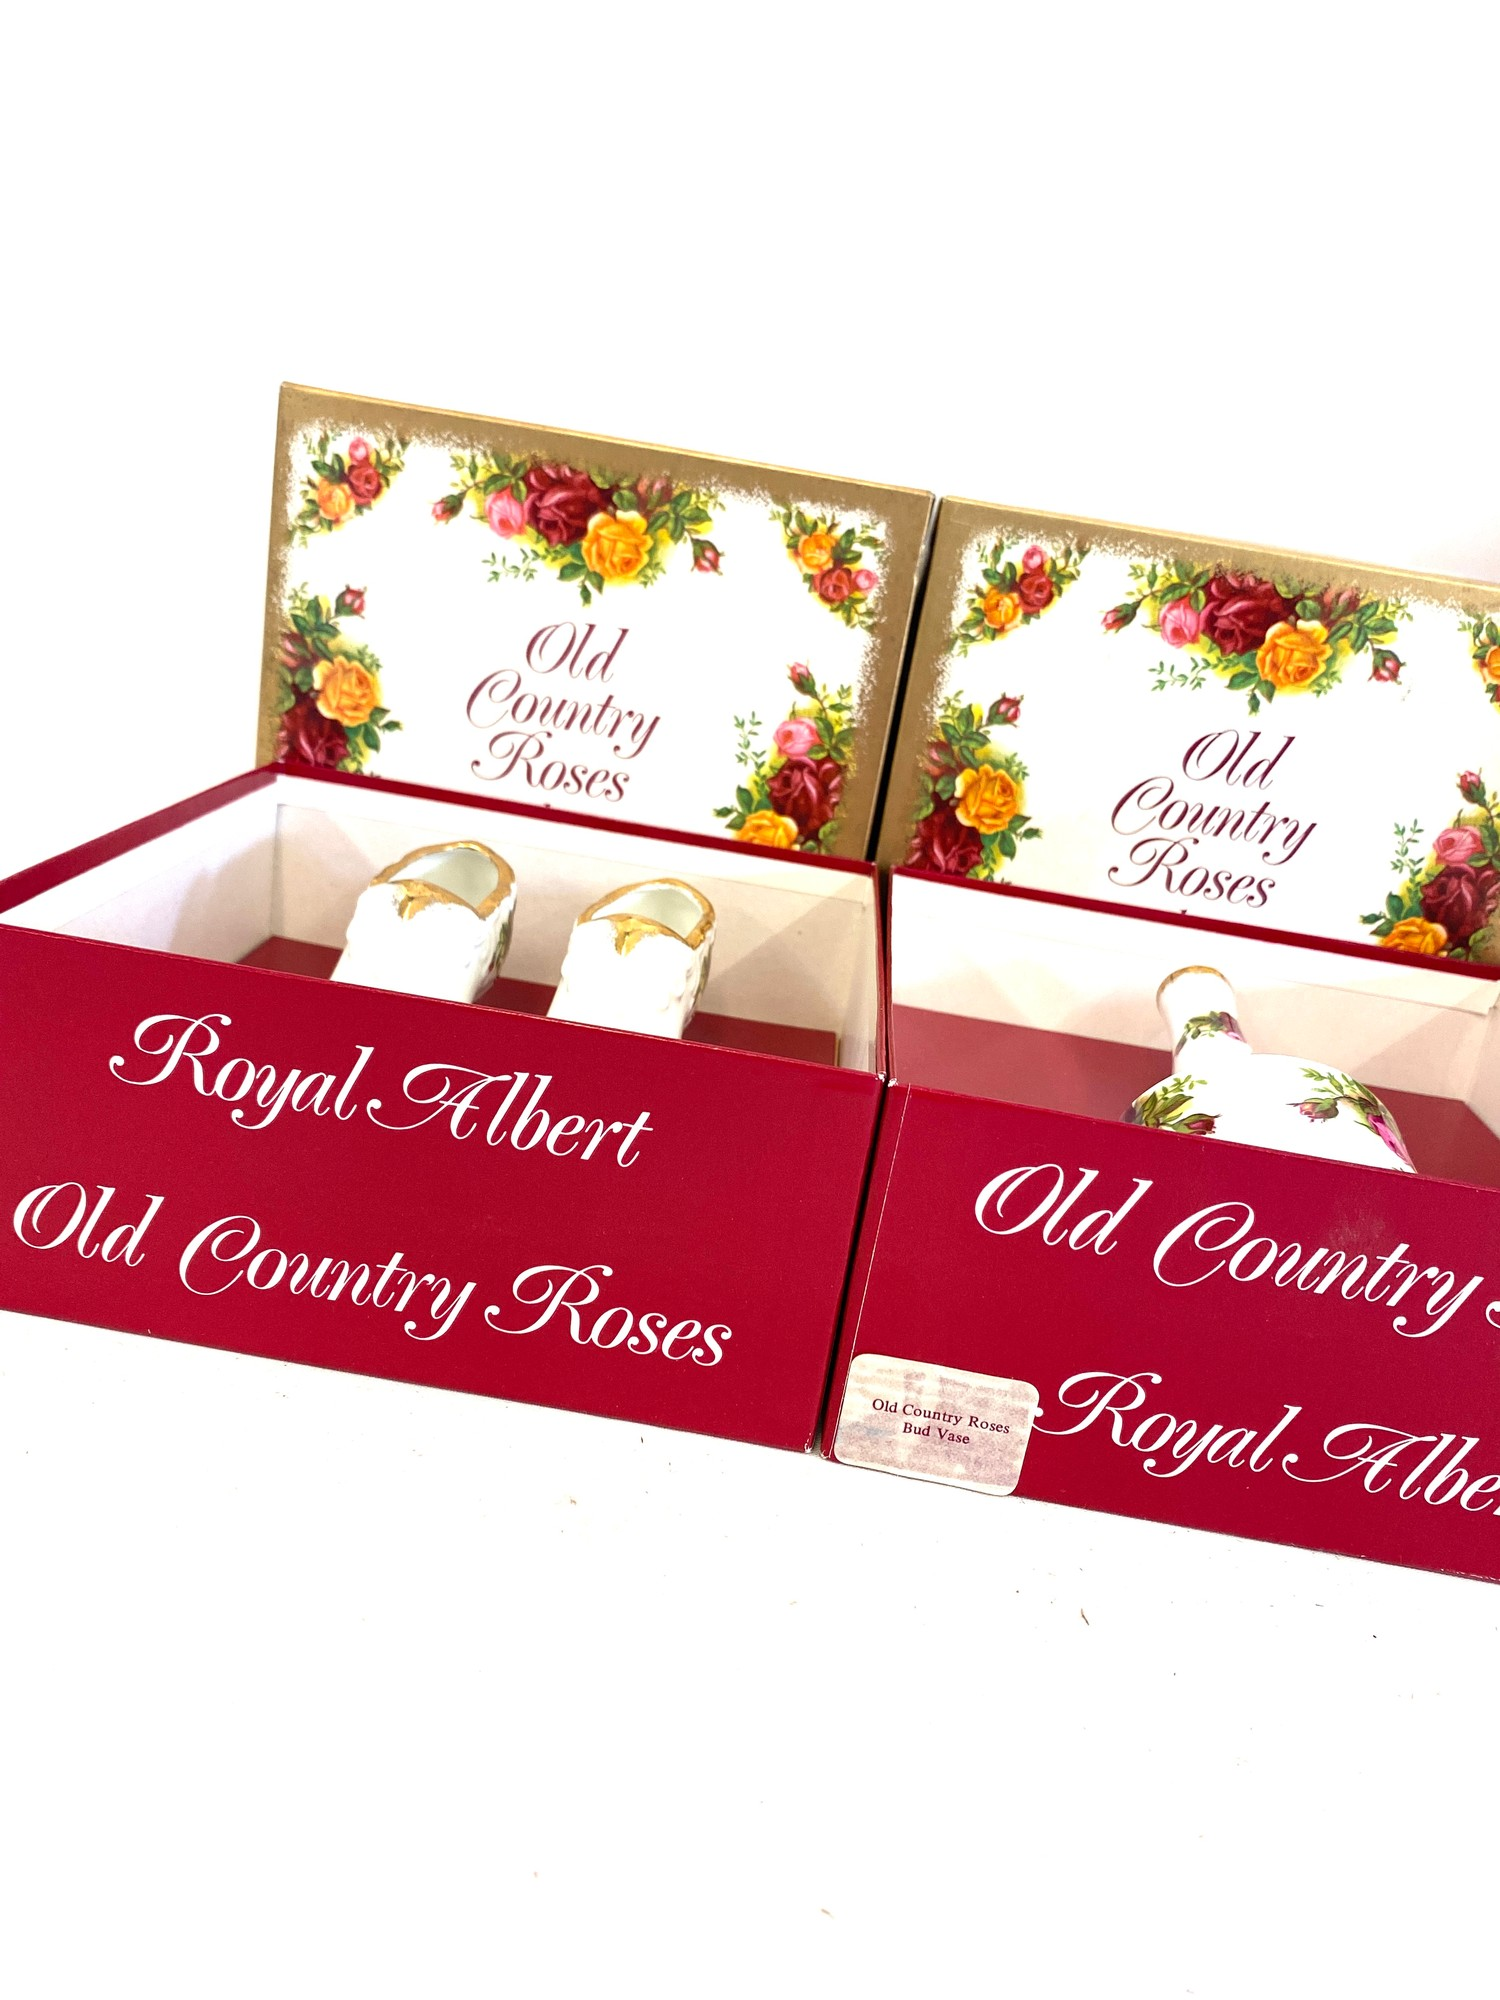 3 Boxed Royal Albert Old Country Roses pottery pieces includes vases etc - Image 3 of 4